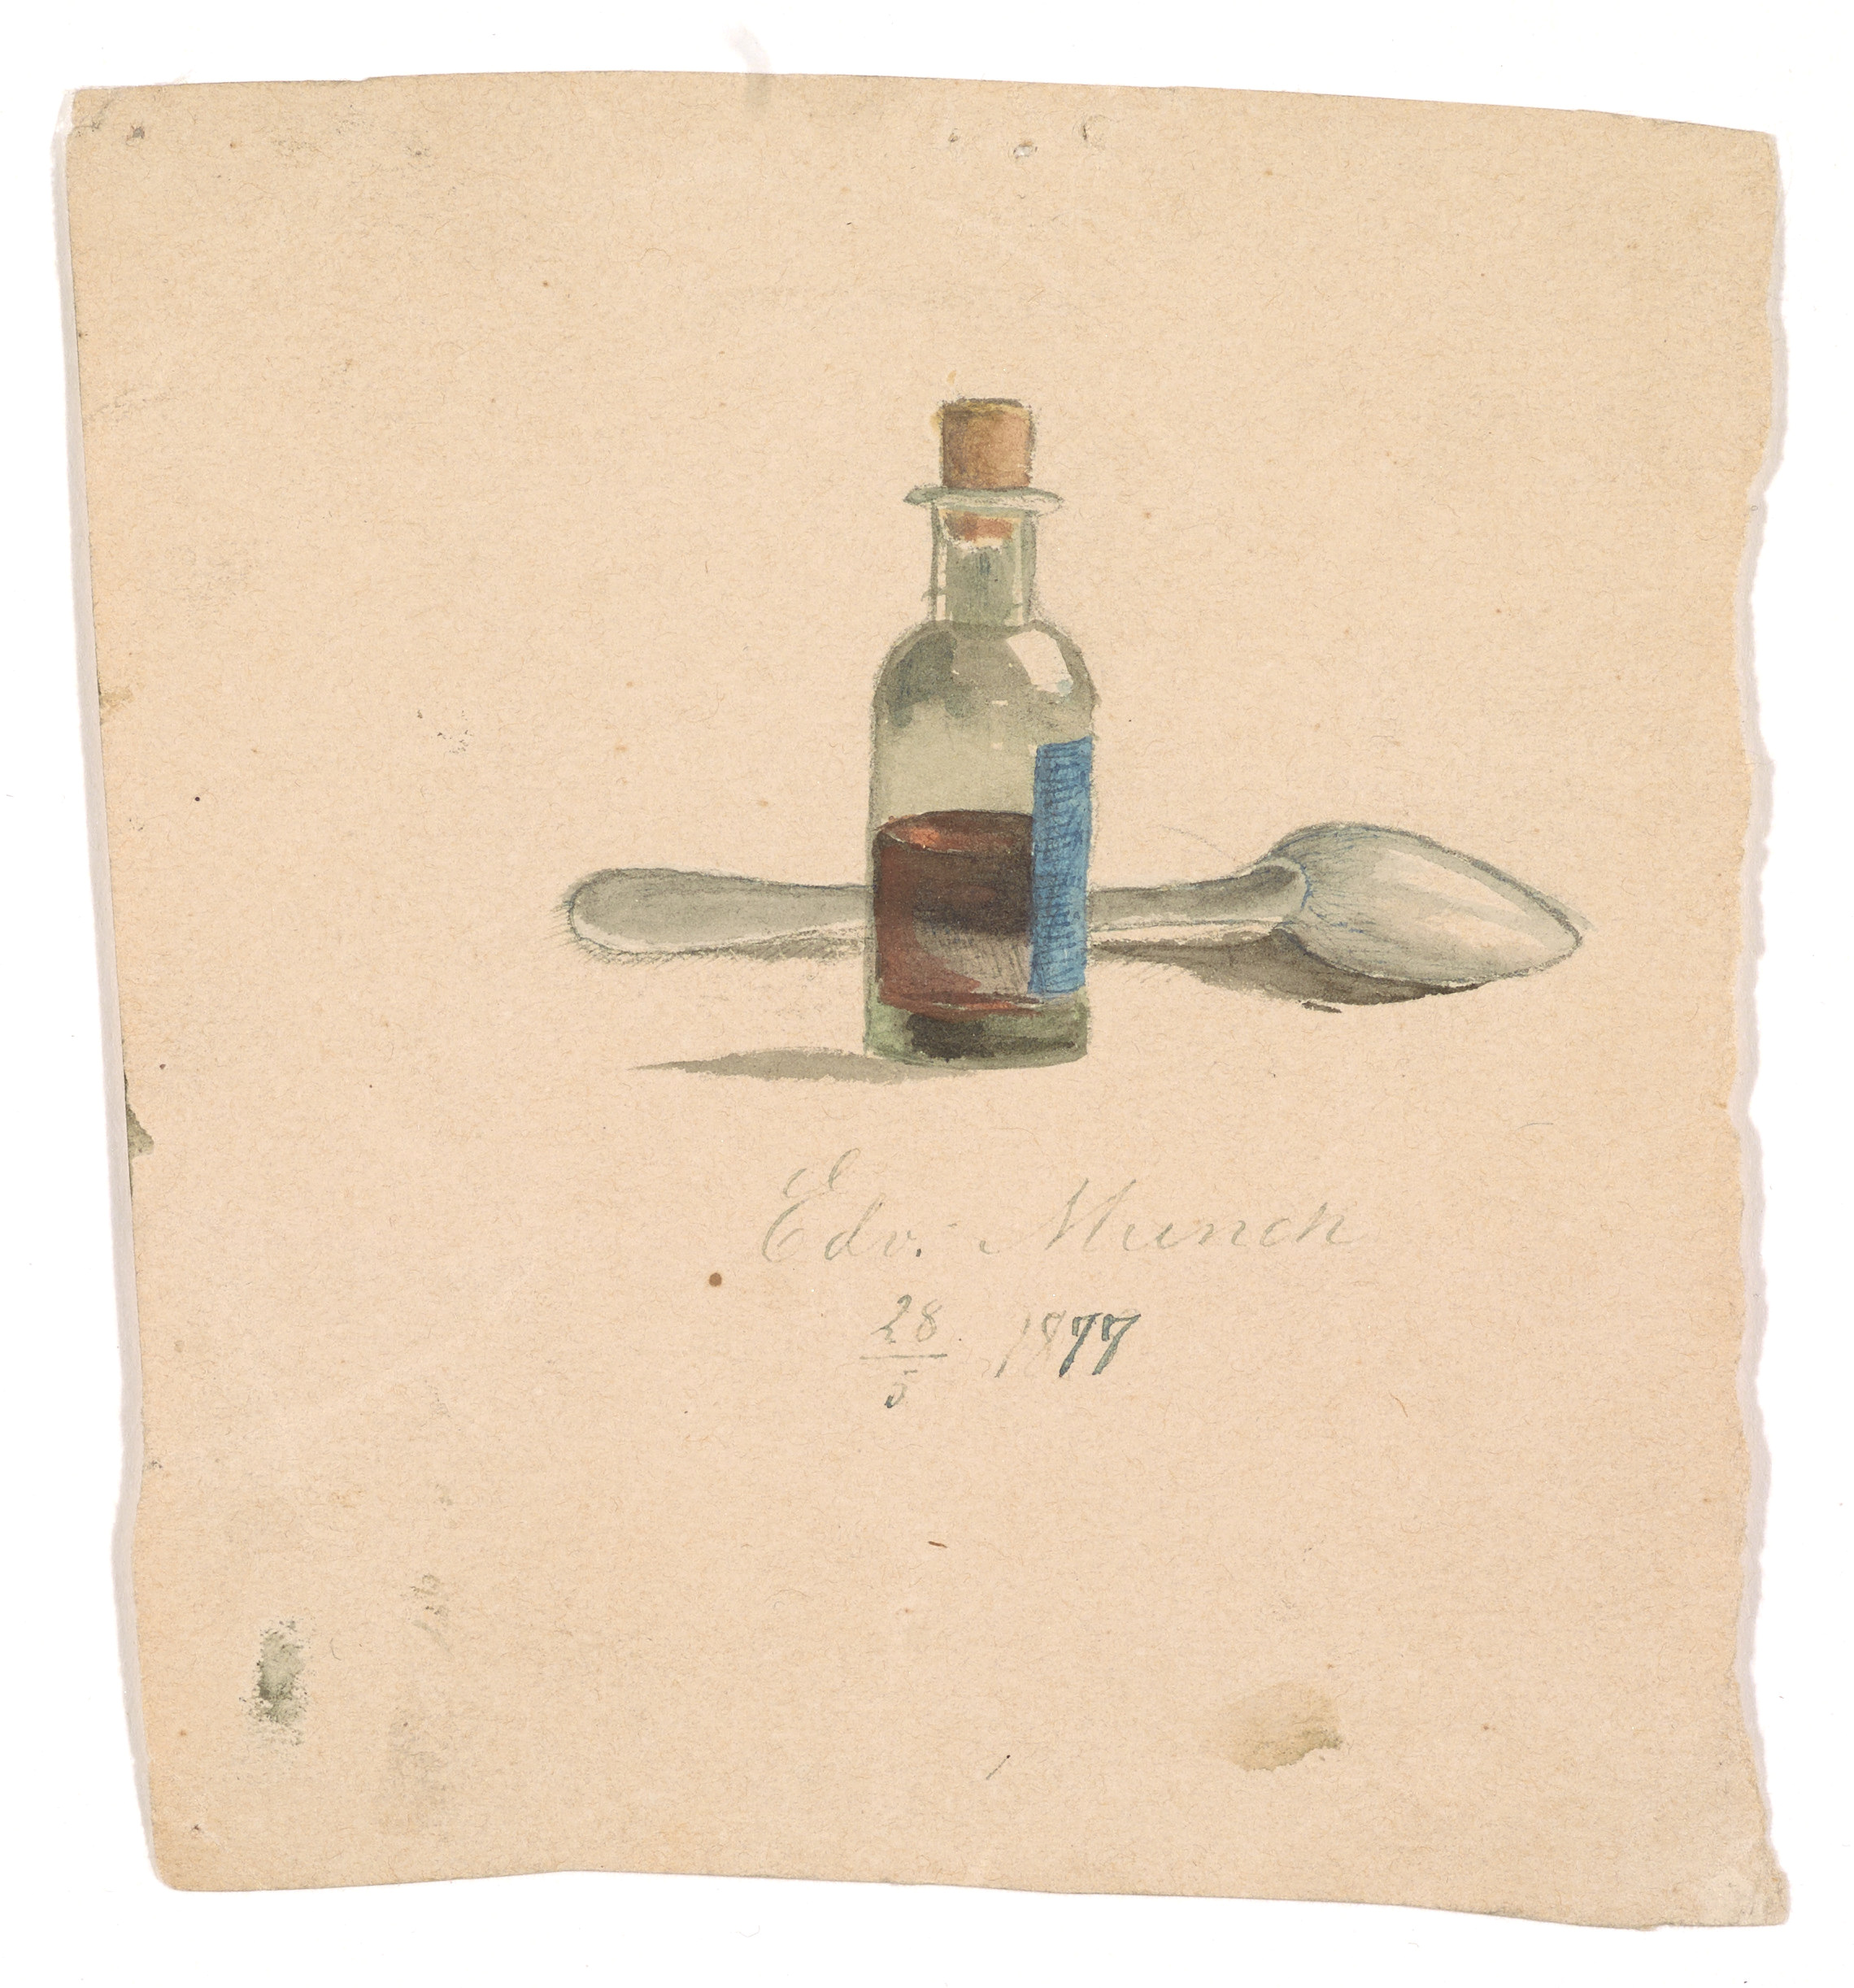 Edvard Munch: Medicine bottle and spoon. Watercolor on paper, 1877. Photo © Munchmuseet